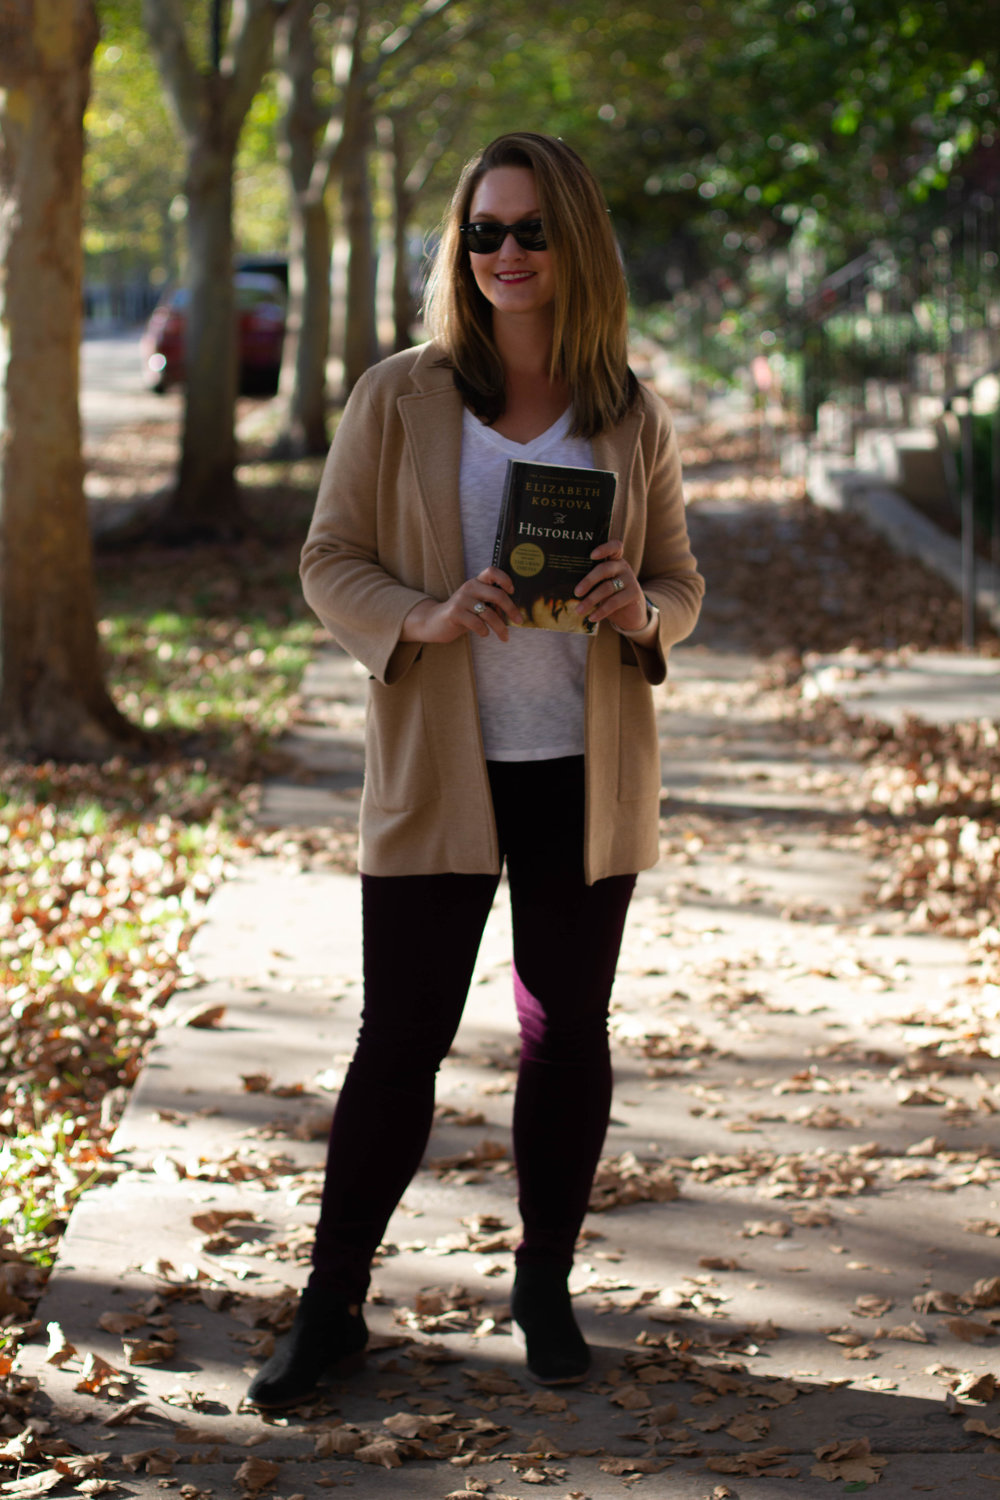 Reading The Historian by Elizabeth Kostova on the streets of New Town in St. Charles, MO